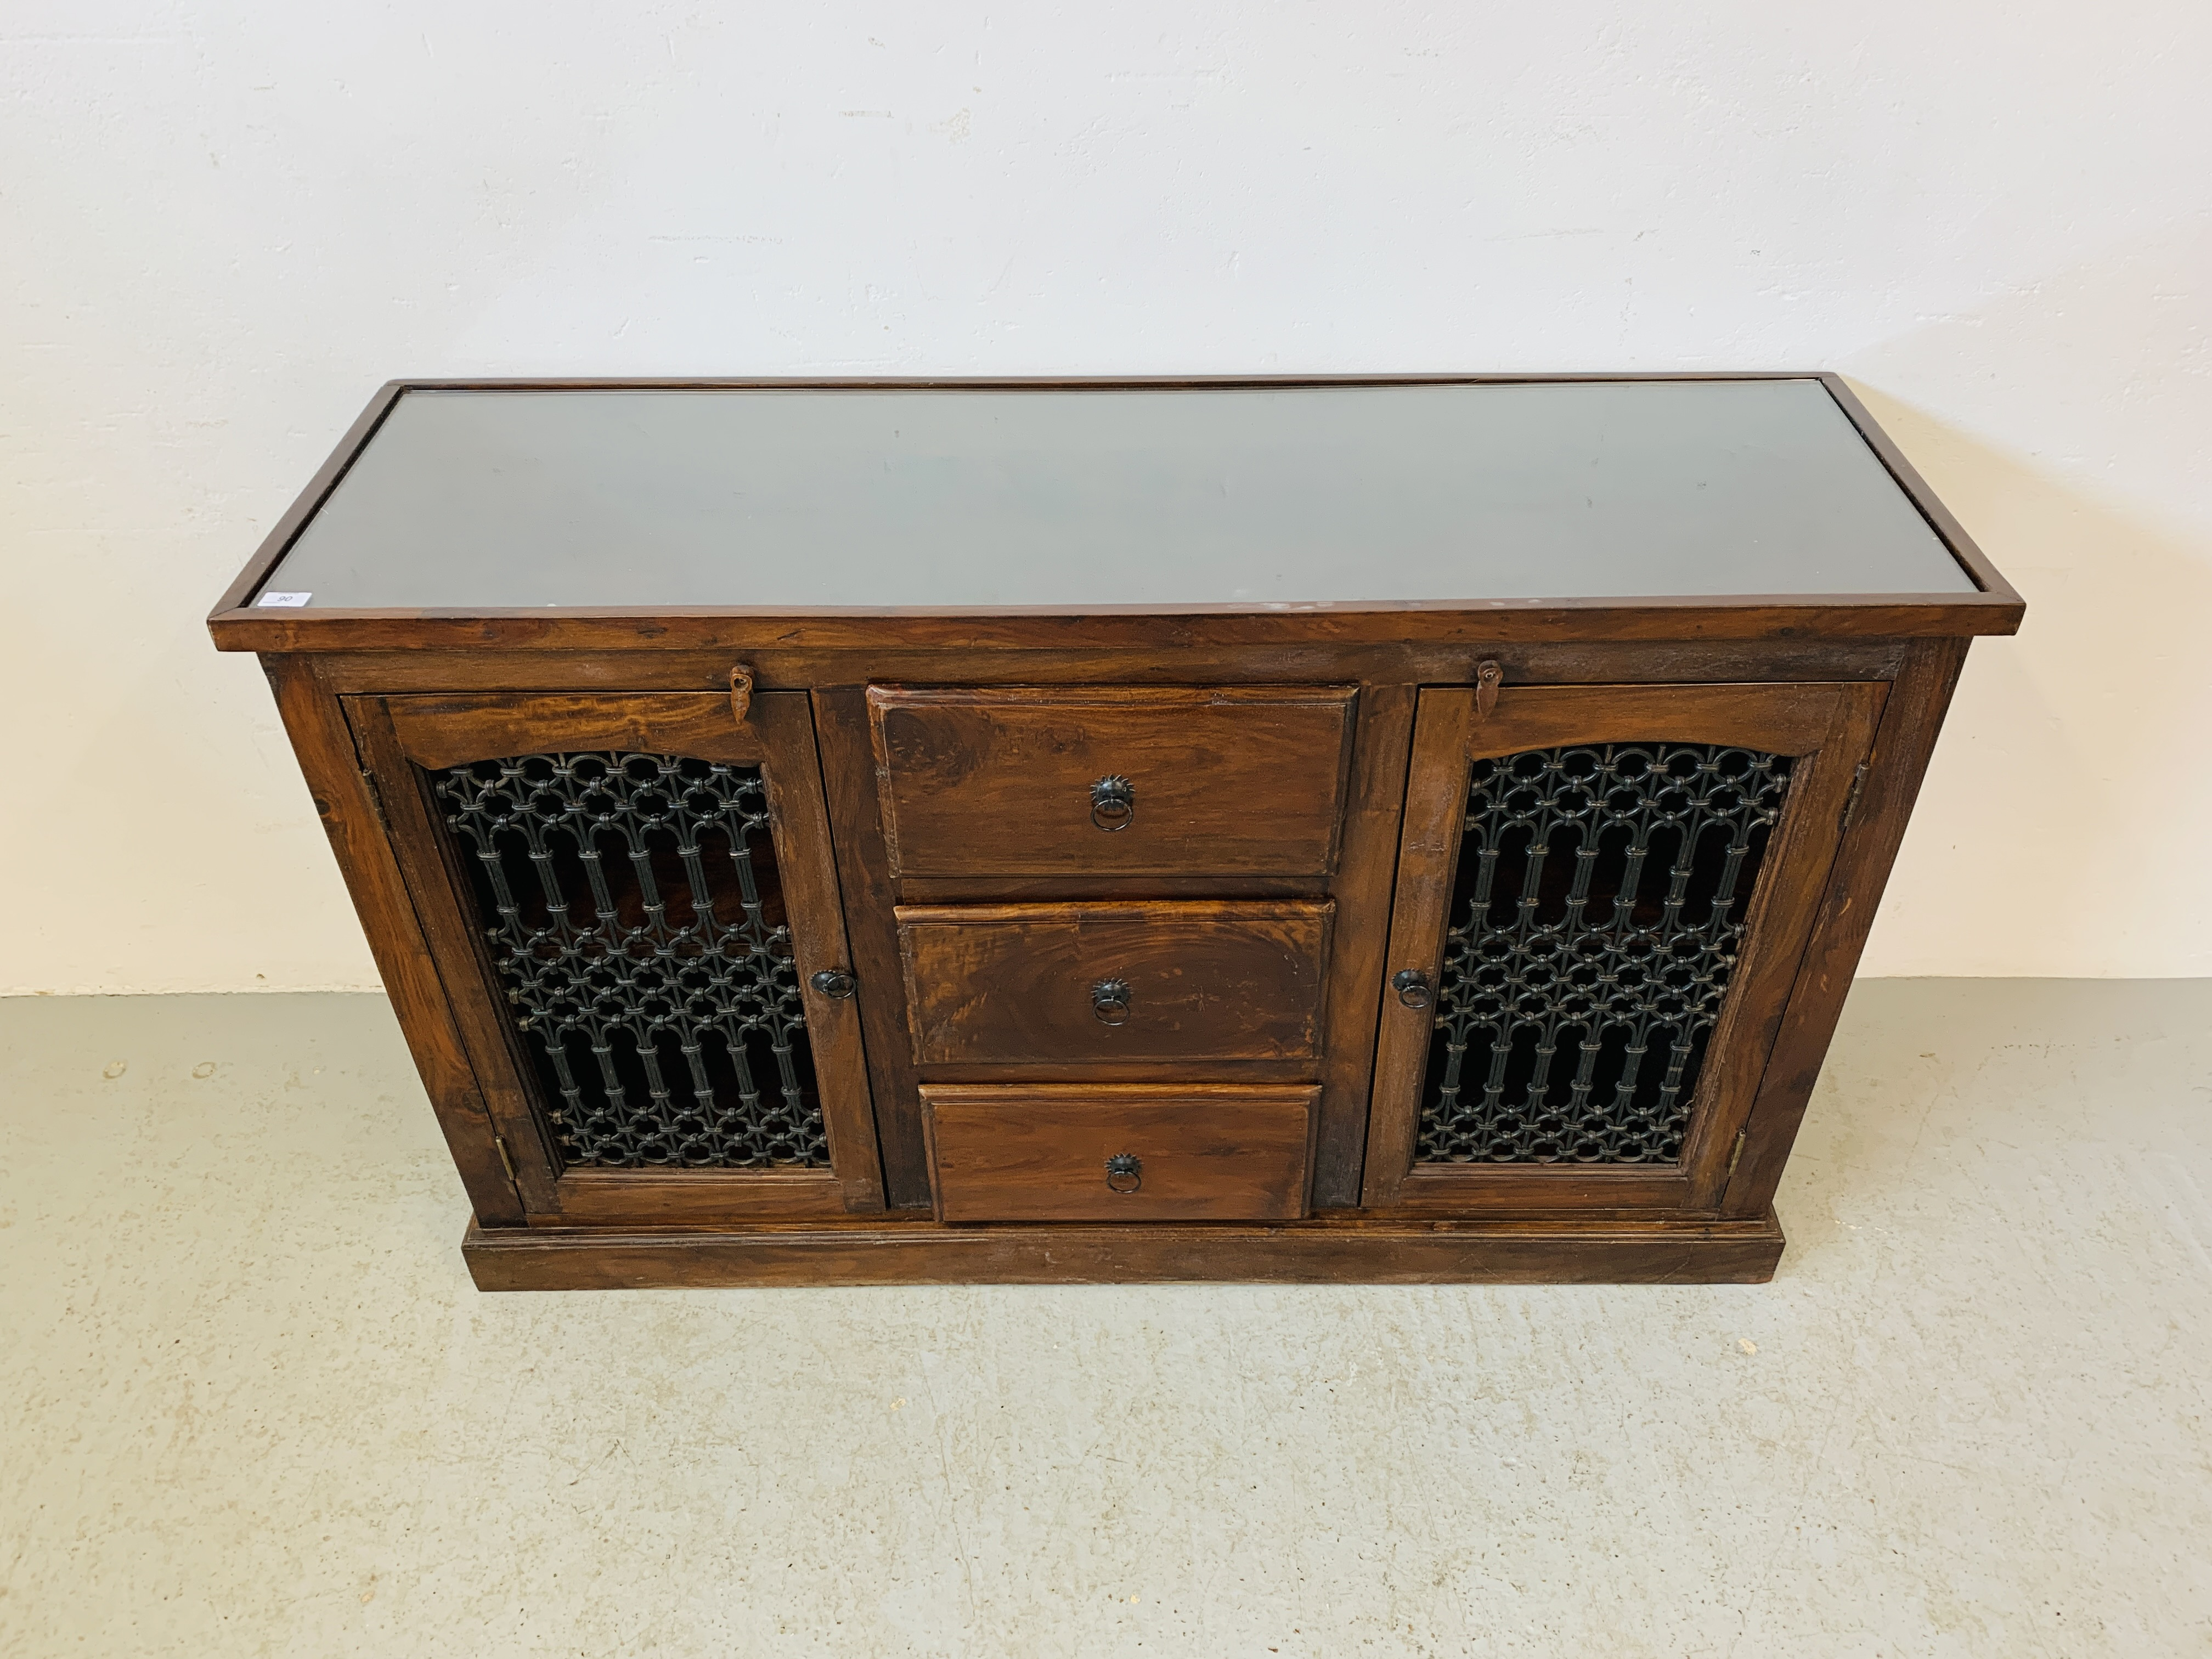 A RUSTIC HARDWOOD COUNTRY & EASTERN STYLE DRESSER BASE, - Image 2 of 9